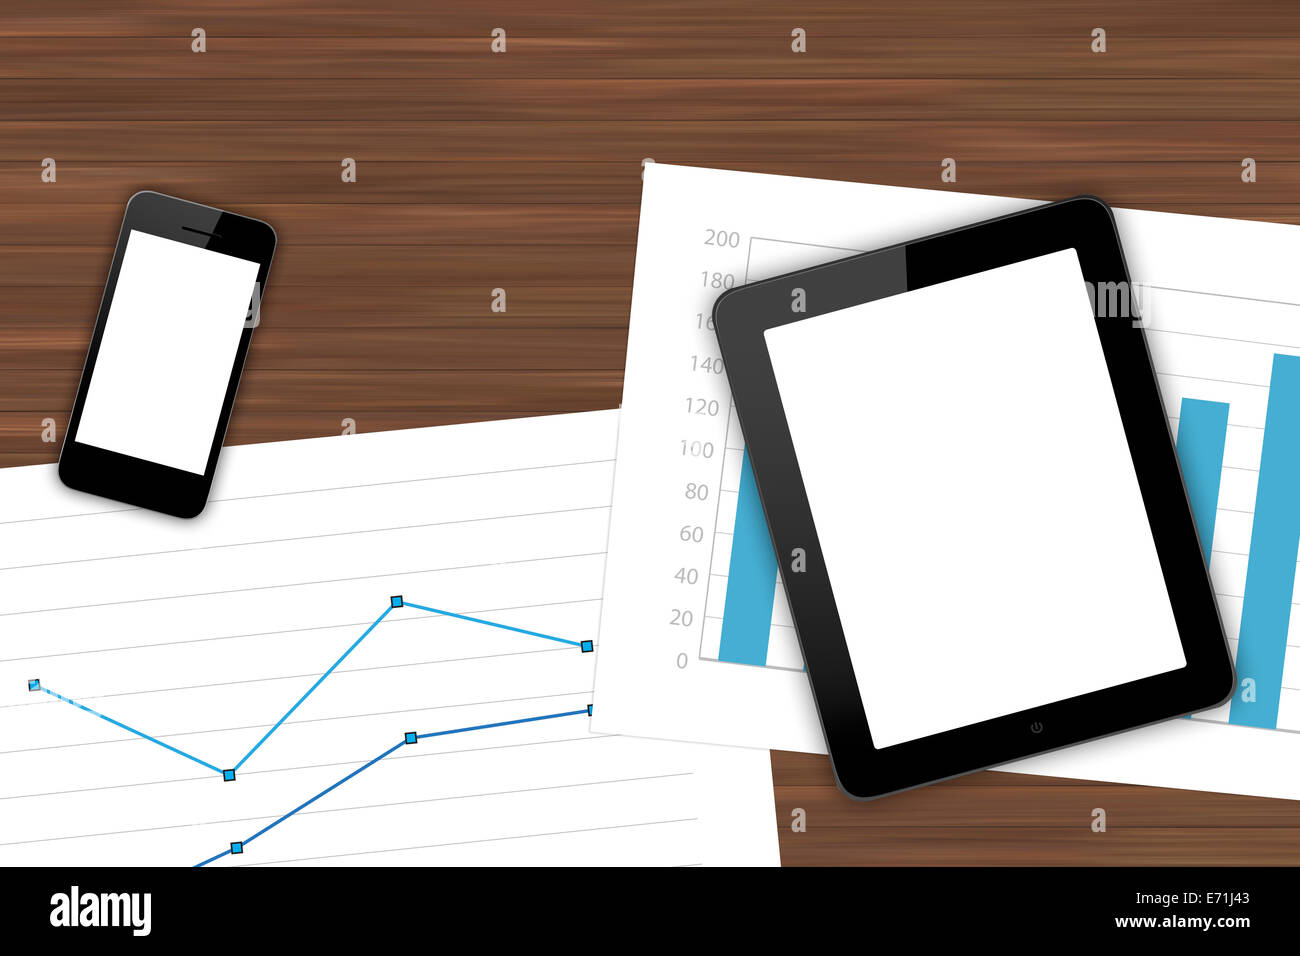 Top view of workplace with smart phone, digital tablet and paper sheet with financial charts on wooden office table. - Stock Image